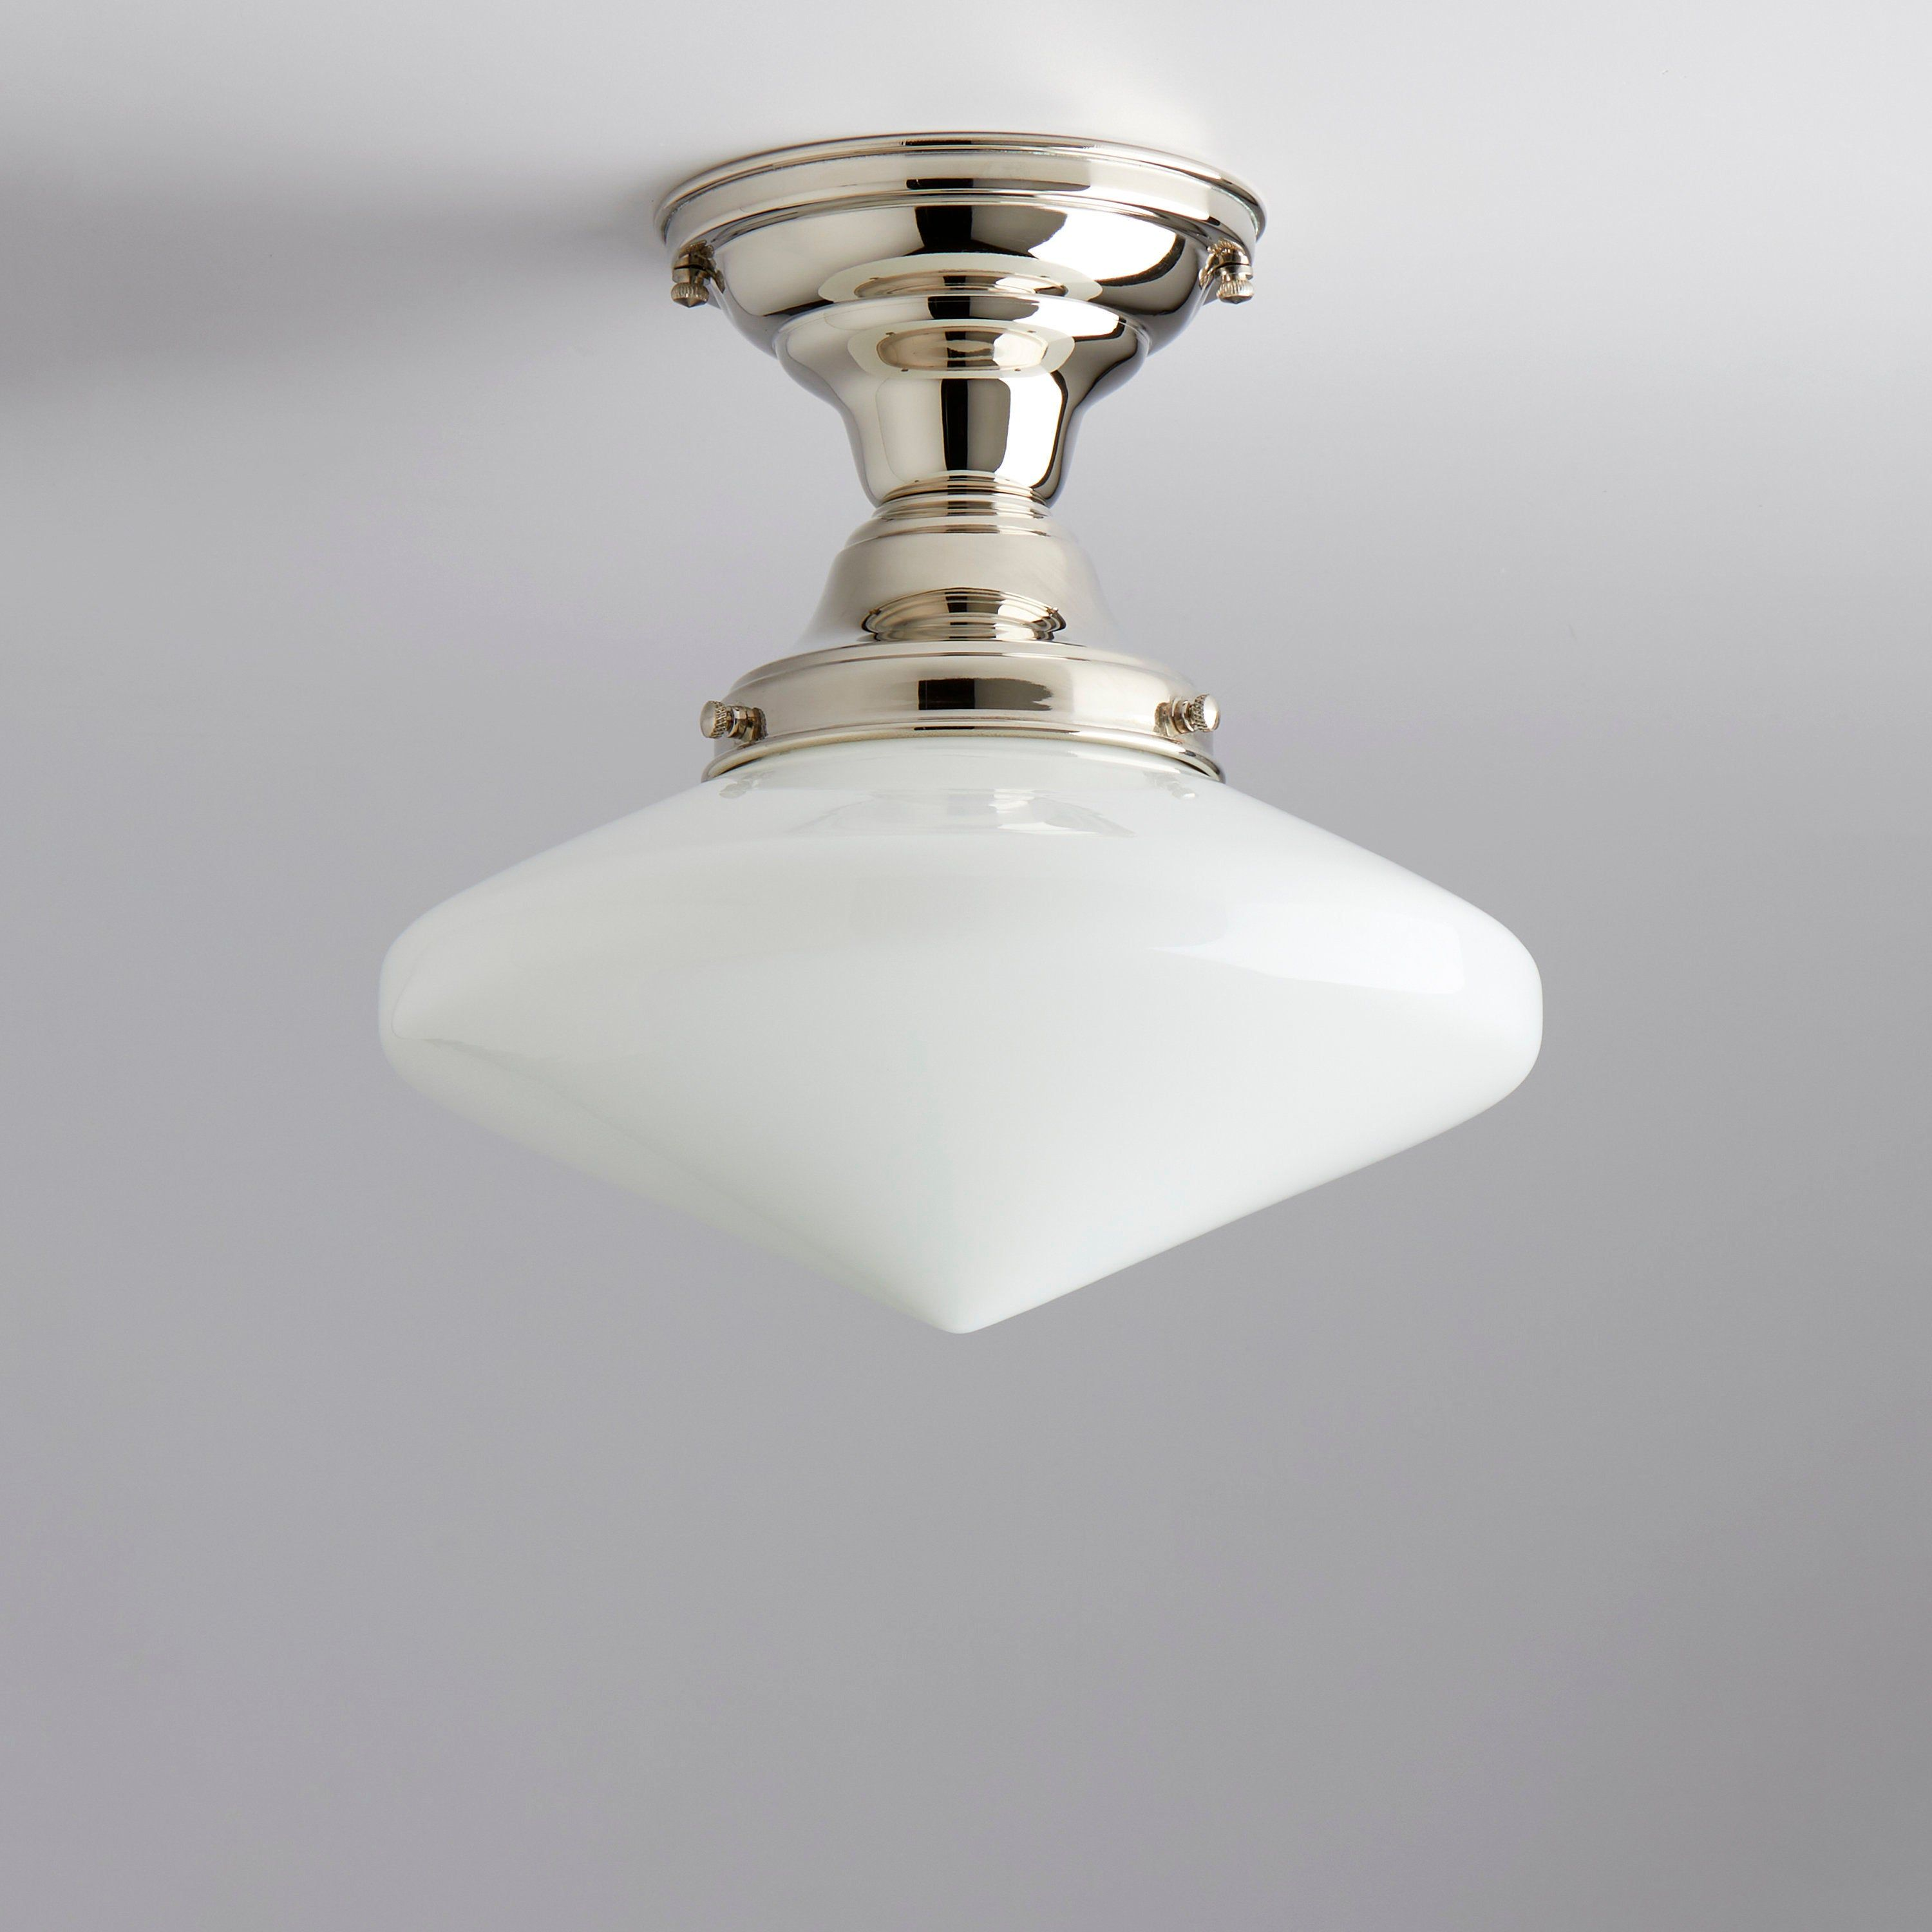 The Classic Flush Mount Schoolhouse Light Fixture Has Been Taken To A Whole New Level Featuring A Vinta School House Lighting Vintage Ceiling Lights Cfl Bulbs